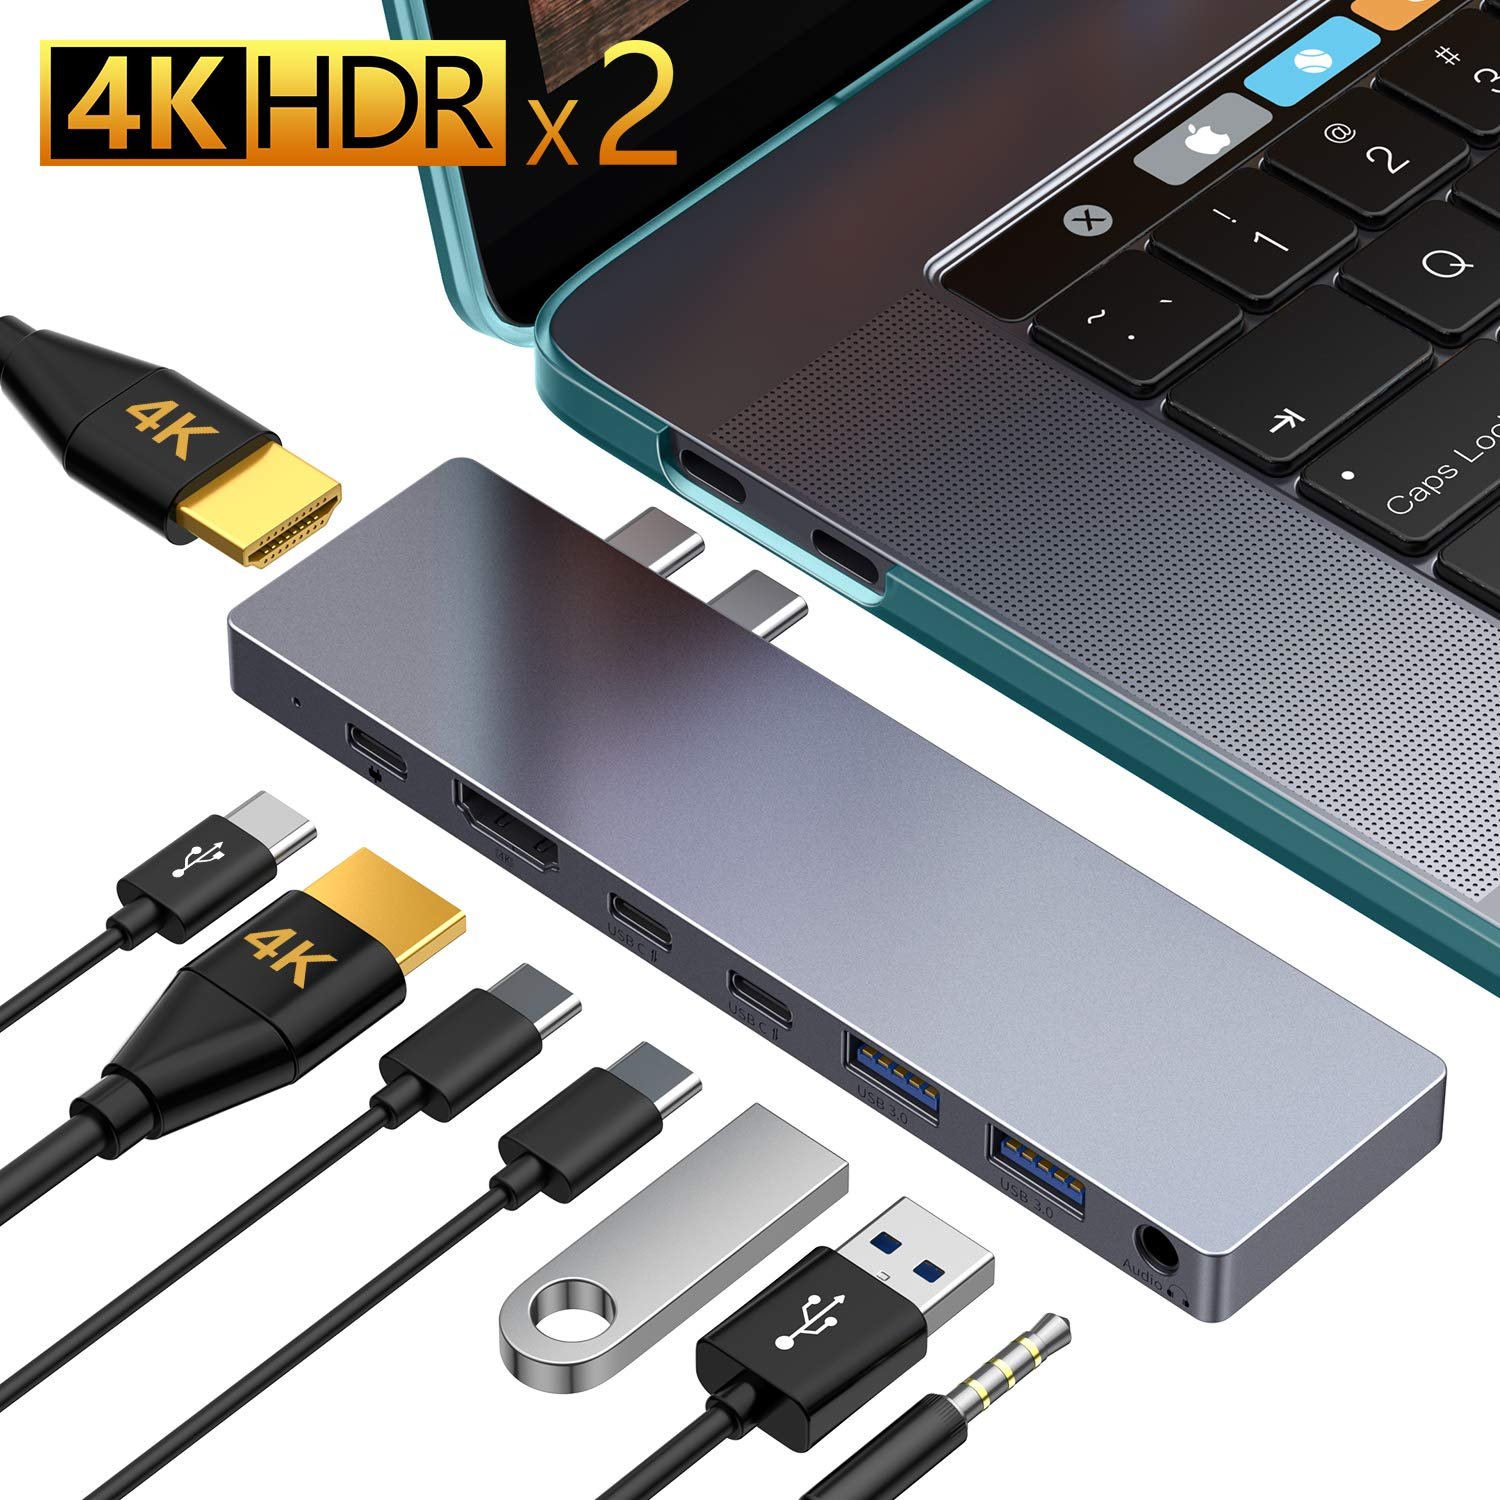 USB C Hub,GIKERSY 8-in-1 USB C Docking Station Compatible with MacBook Pro 2019,2018-2016 13''/15'' with case,2 HDMI 4K,USB-C 87W Power Delivery,2USB-C Data Ports,2USB 3.0 Ports,3.5mm Audio Jack